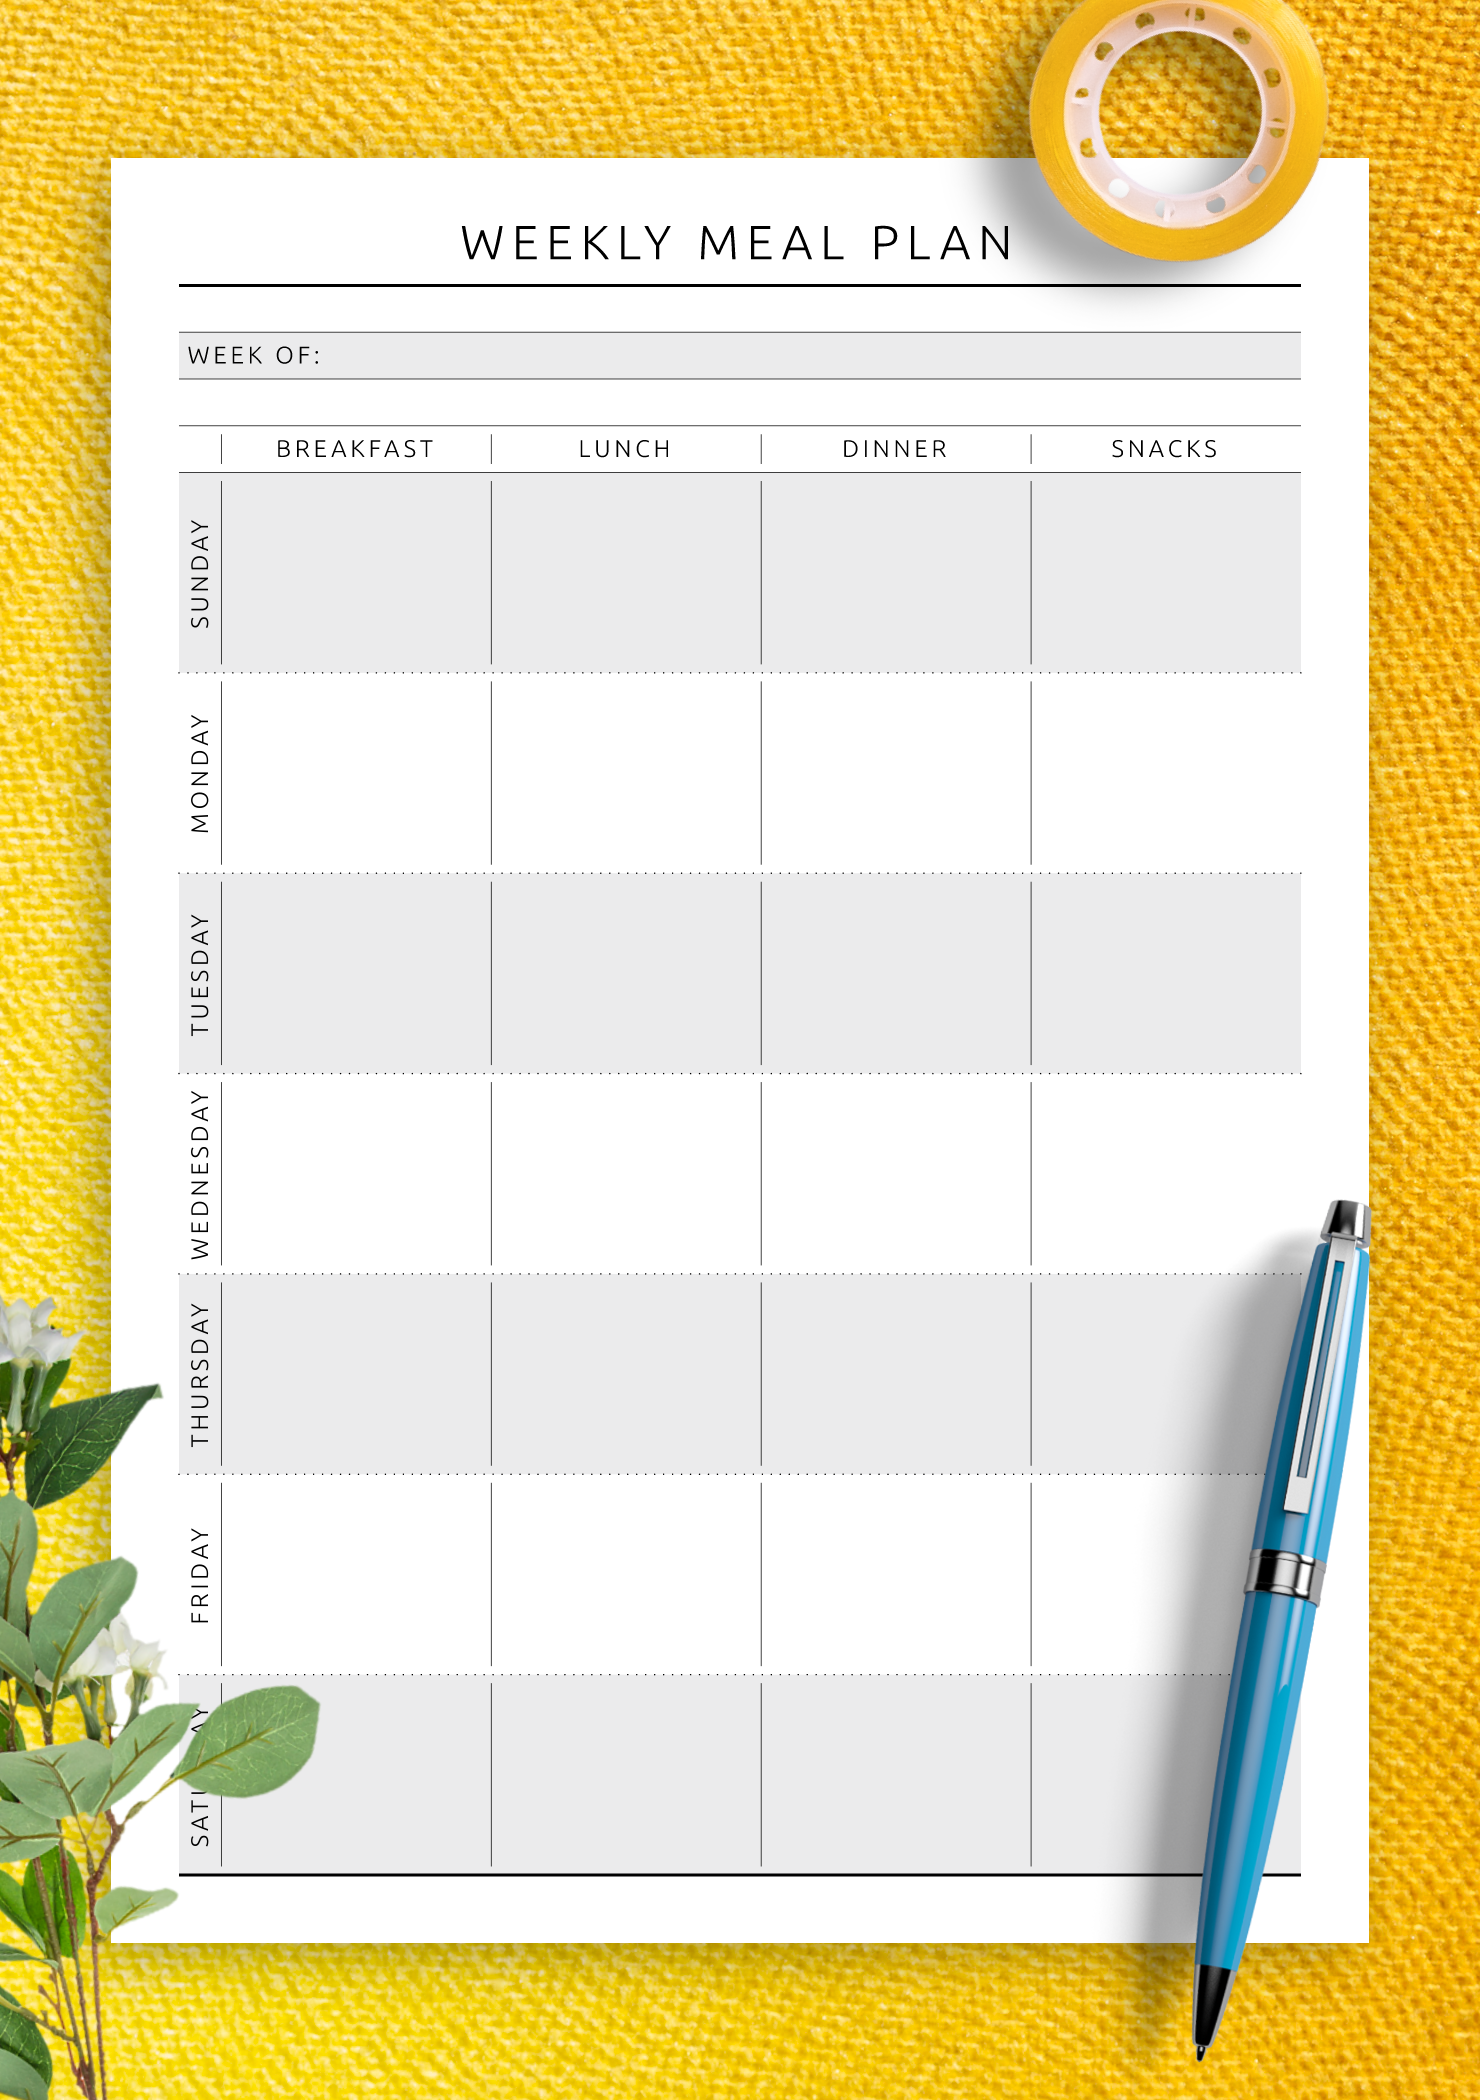 photograph regarding Free Printable Weekly Meal Planner referred to as Absolutely free Printable Weekly Dinner System - Primary Layout PDF Down load